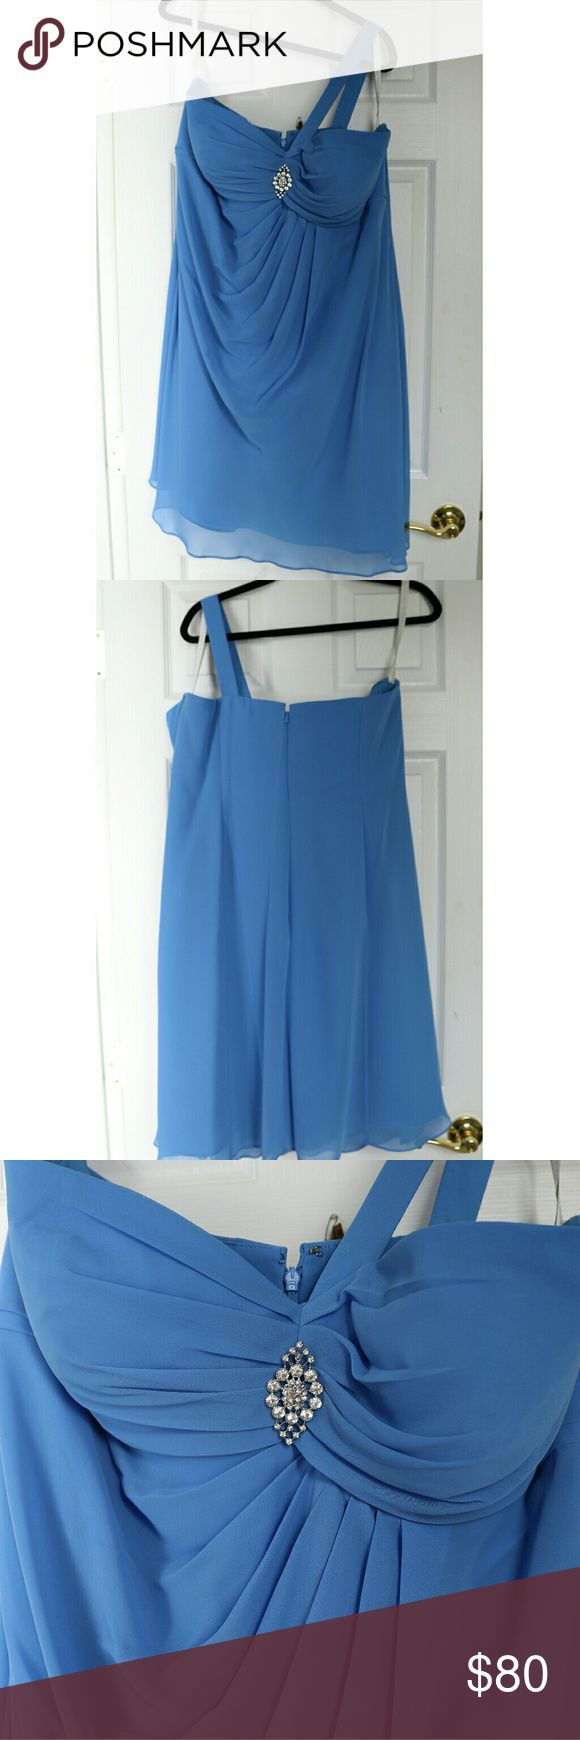 Light blue bridesmaid dress. Bridesmaid dress, worn once.  The pin is removable.  No wear or tear. Bill Levkoff Dresses Midi